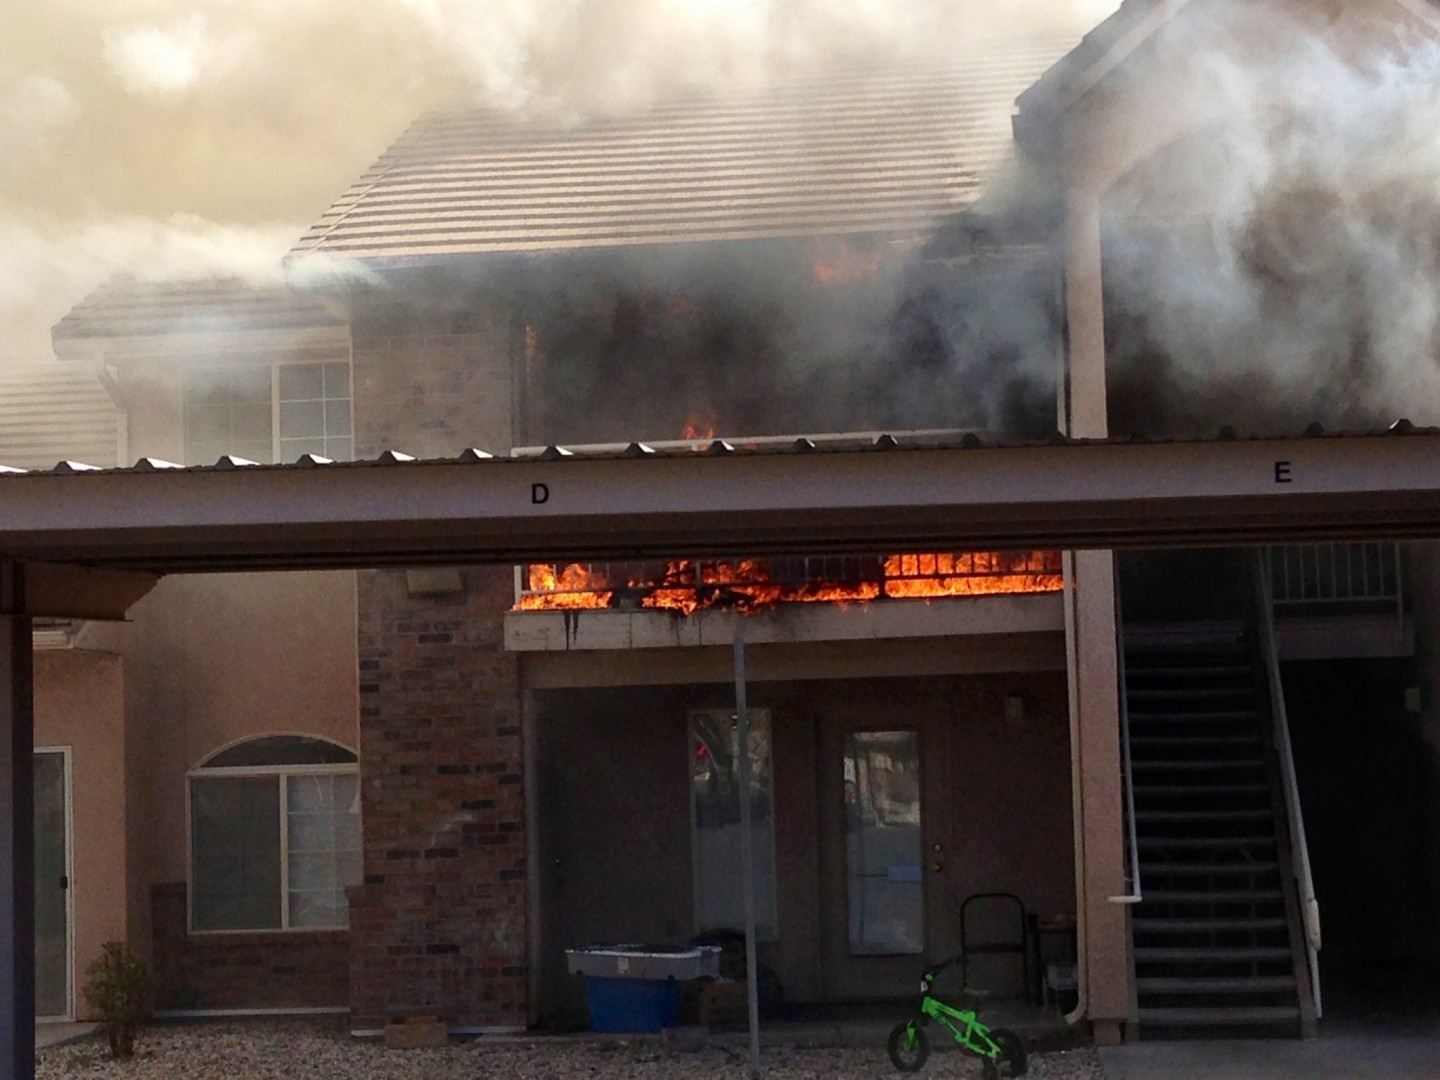 Fire at Desert Rose Apartments, St. George, Utah, March 18, 2013 | Photo by Dave Amodt, St. George News